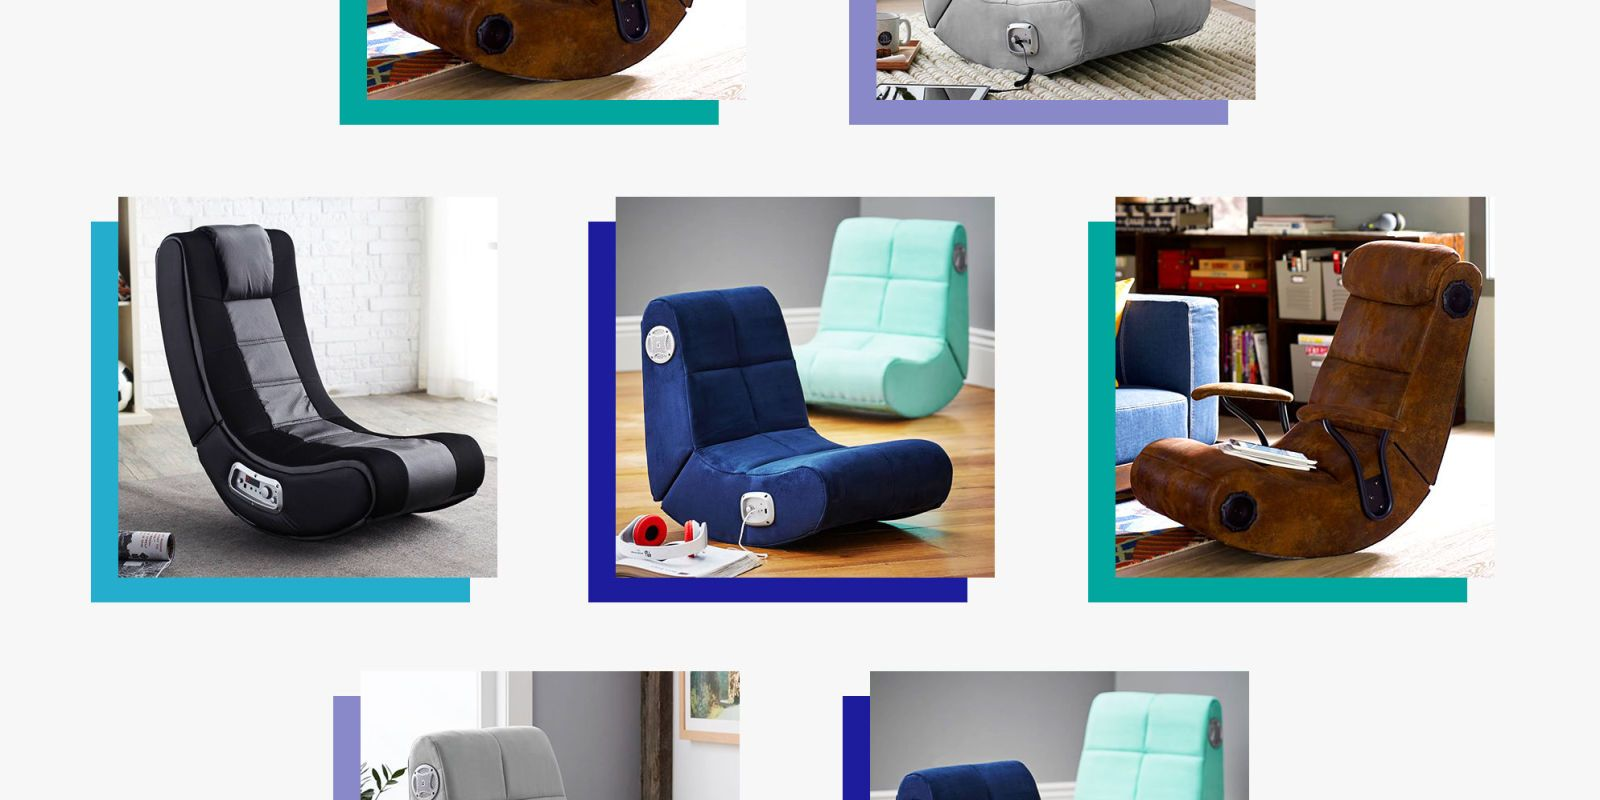 Comfort Is Key, Especially In The Middle Of An Intense Gaming Session.  Thatu0027s Where A Gaming Chair Comes In. Here Are 10 Sweet Seats With Cool  Features To ...